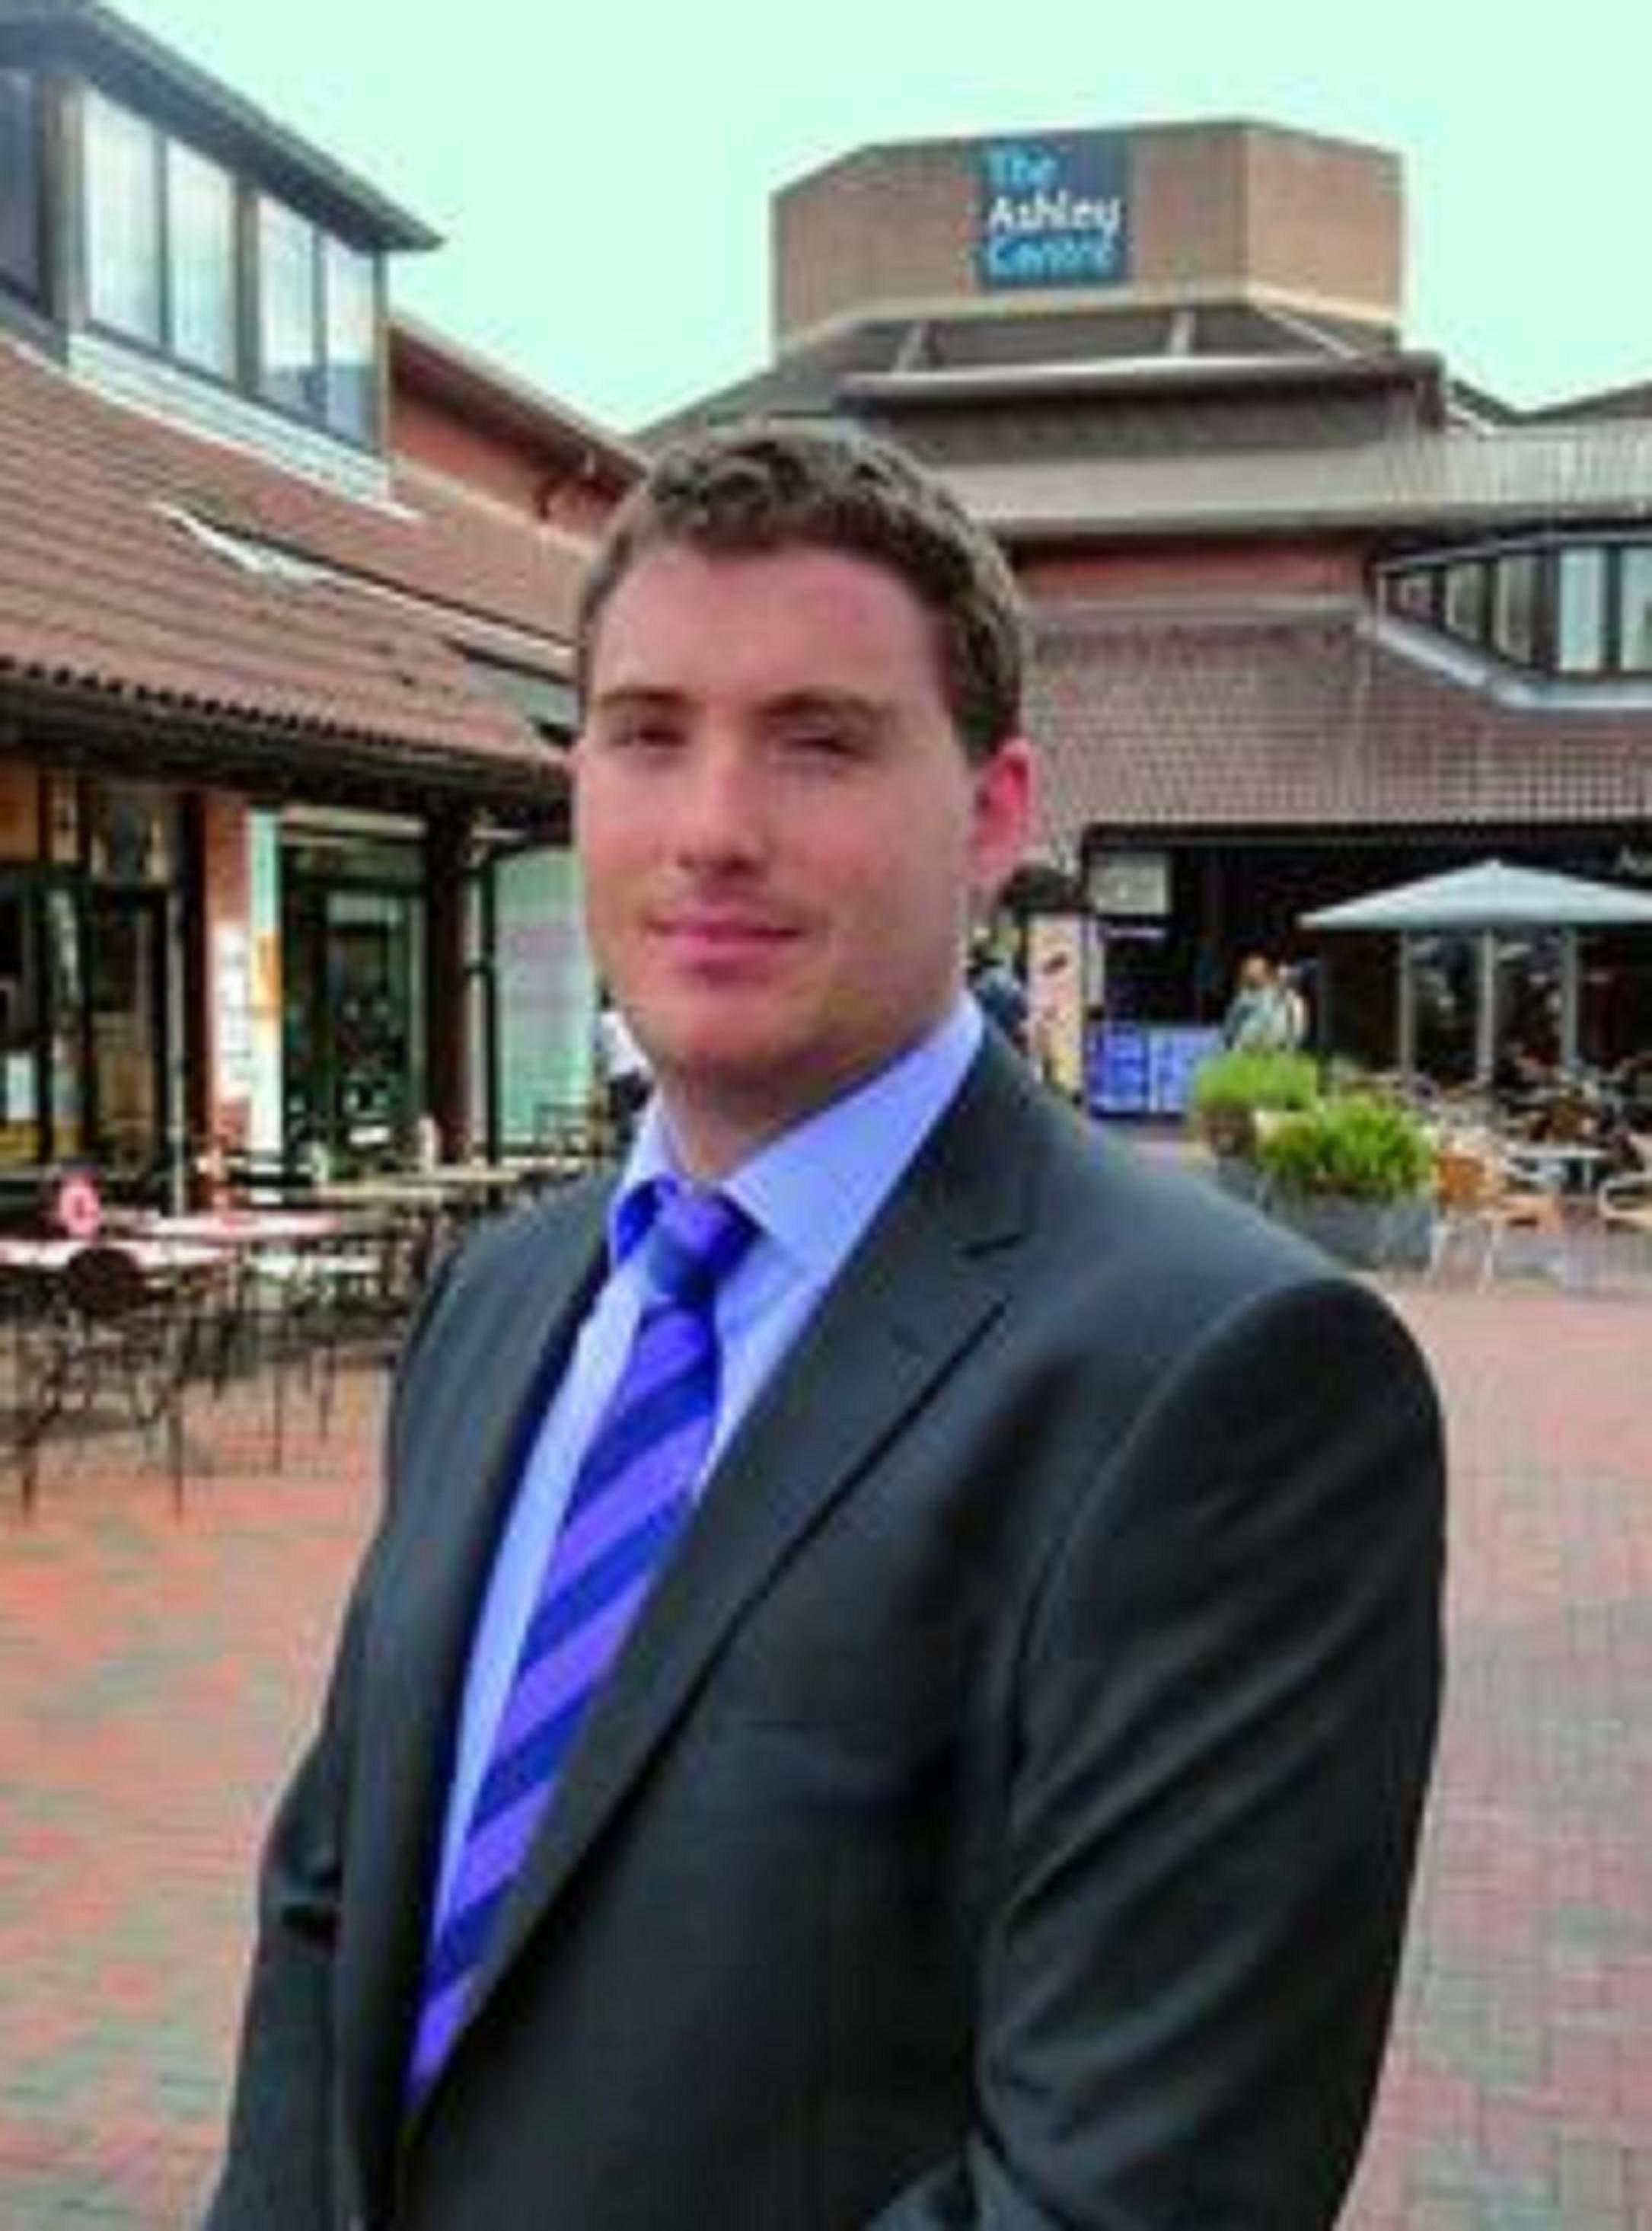 Adam Worley, Epsom's Business Development Manager, has resigned